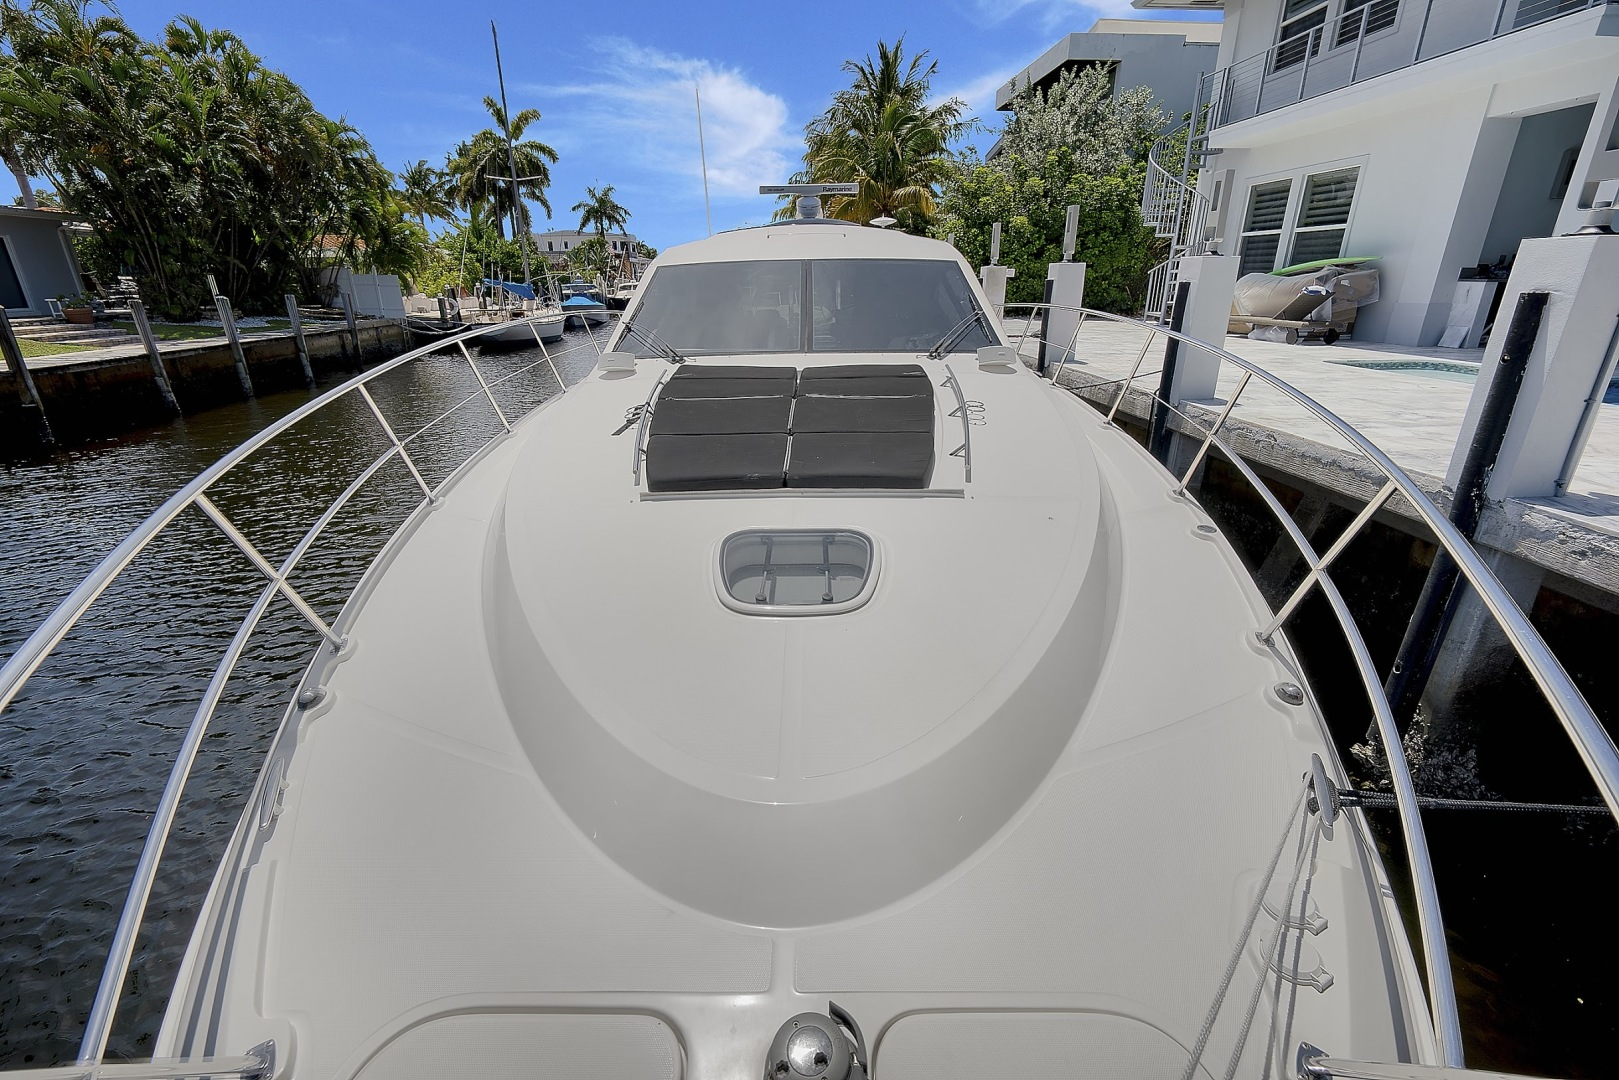 Sea Ray-Sundancer 2014-Lunasea Boca Raton-Florida-United States-1503188 | Thumbnail